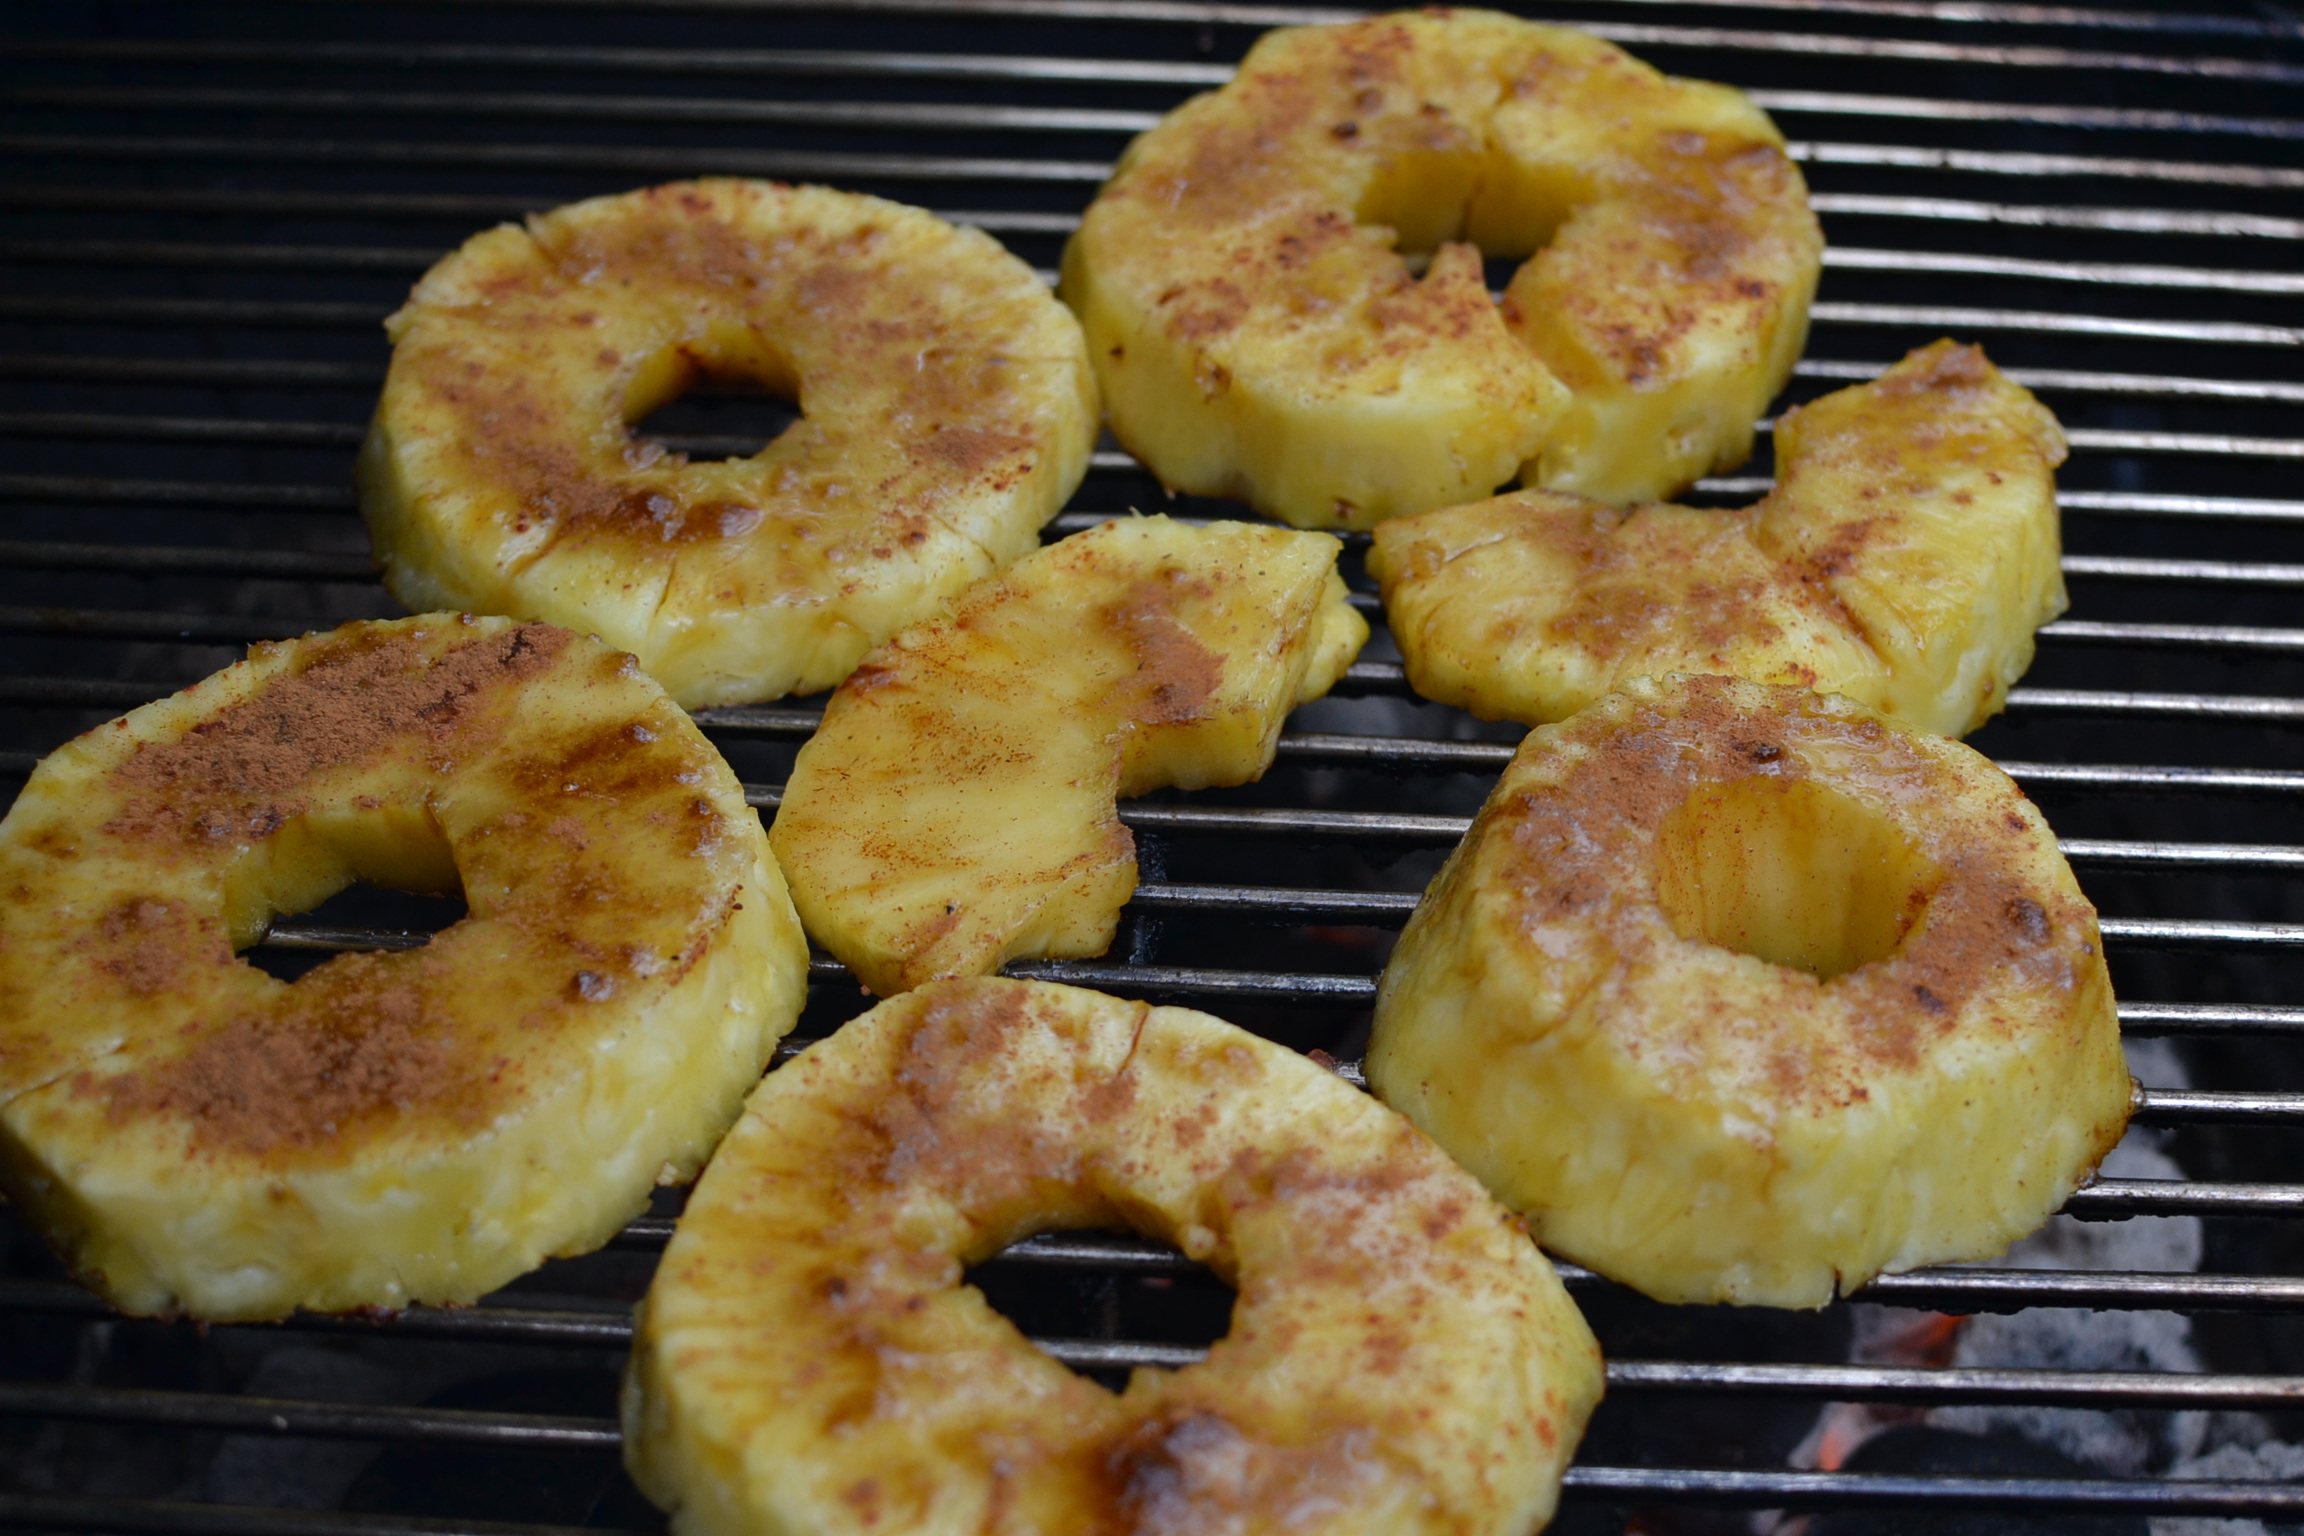 How To Grill Canned Pineapple Rings